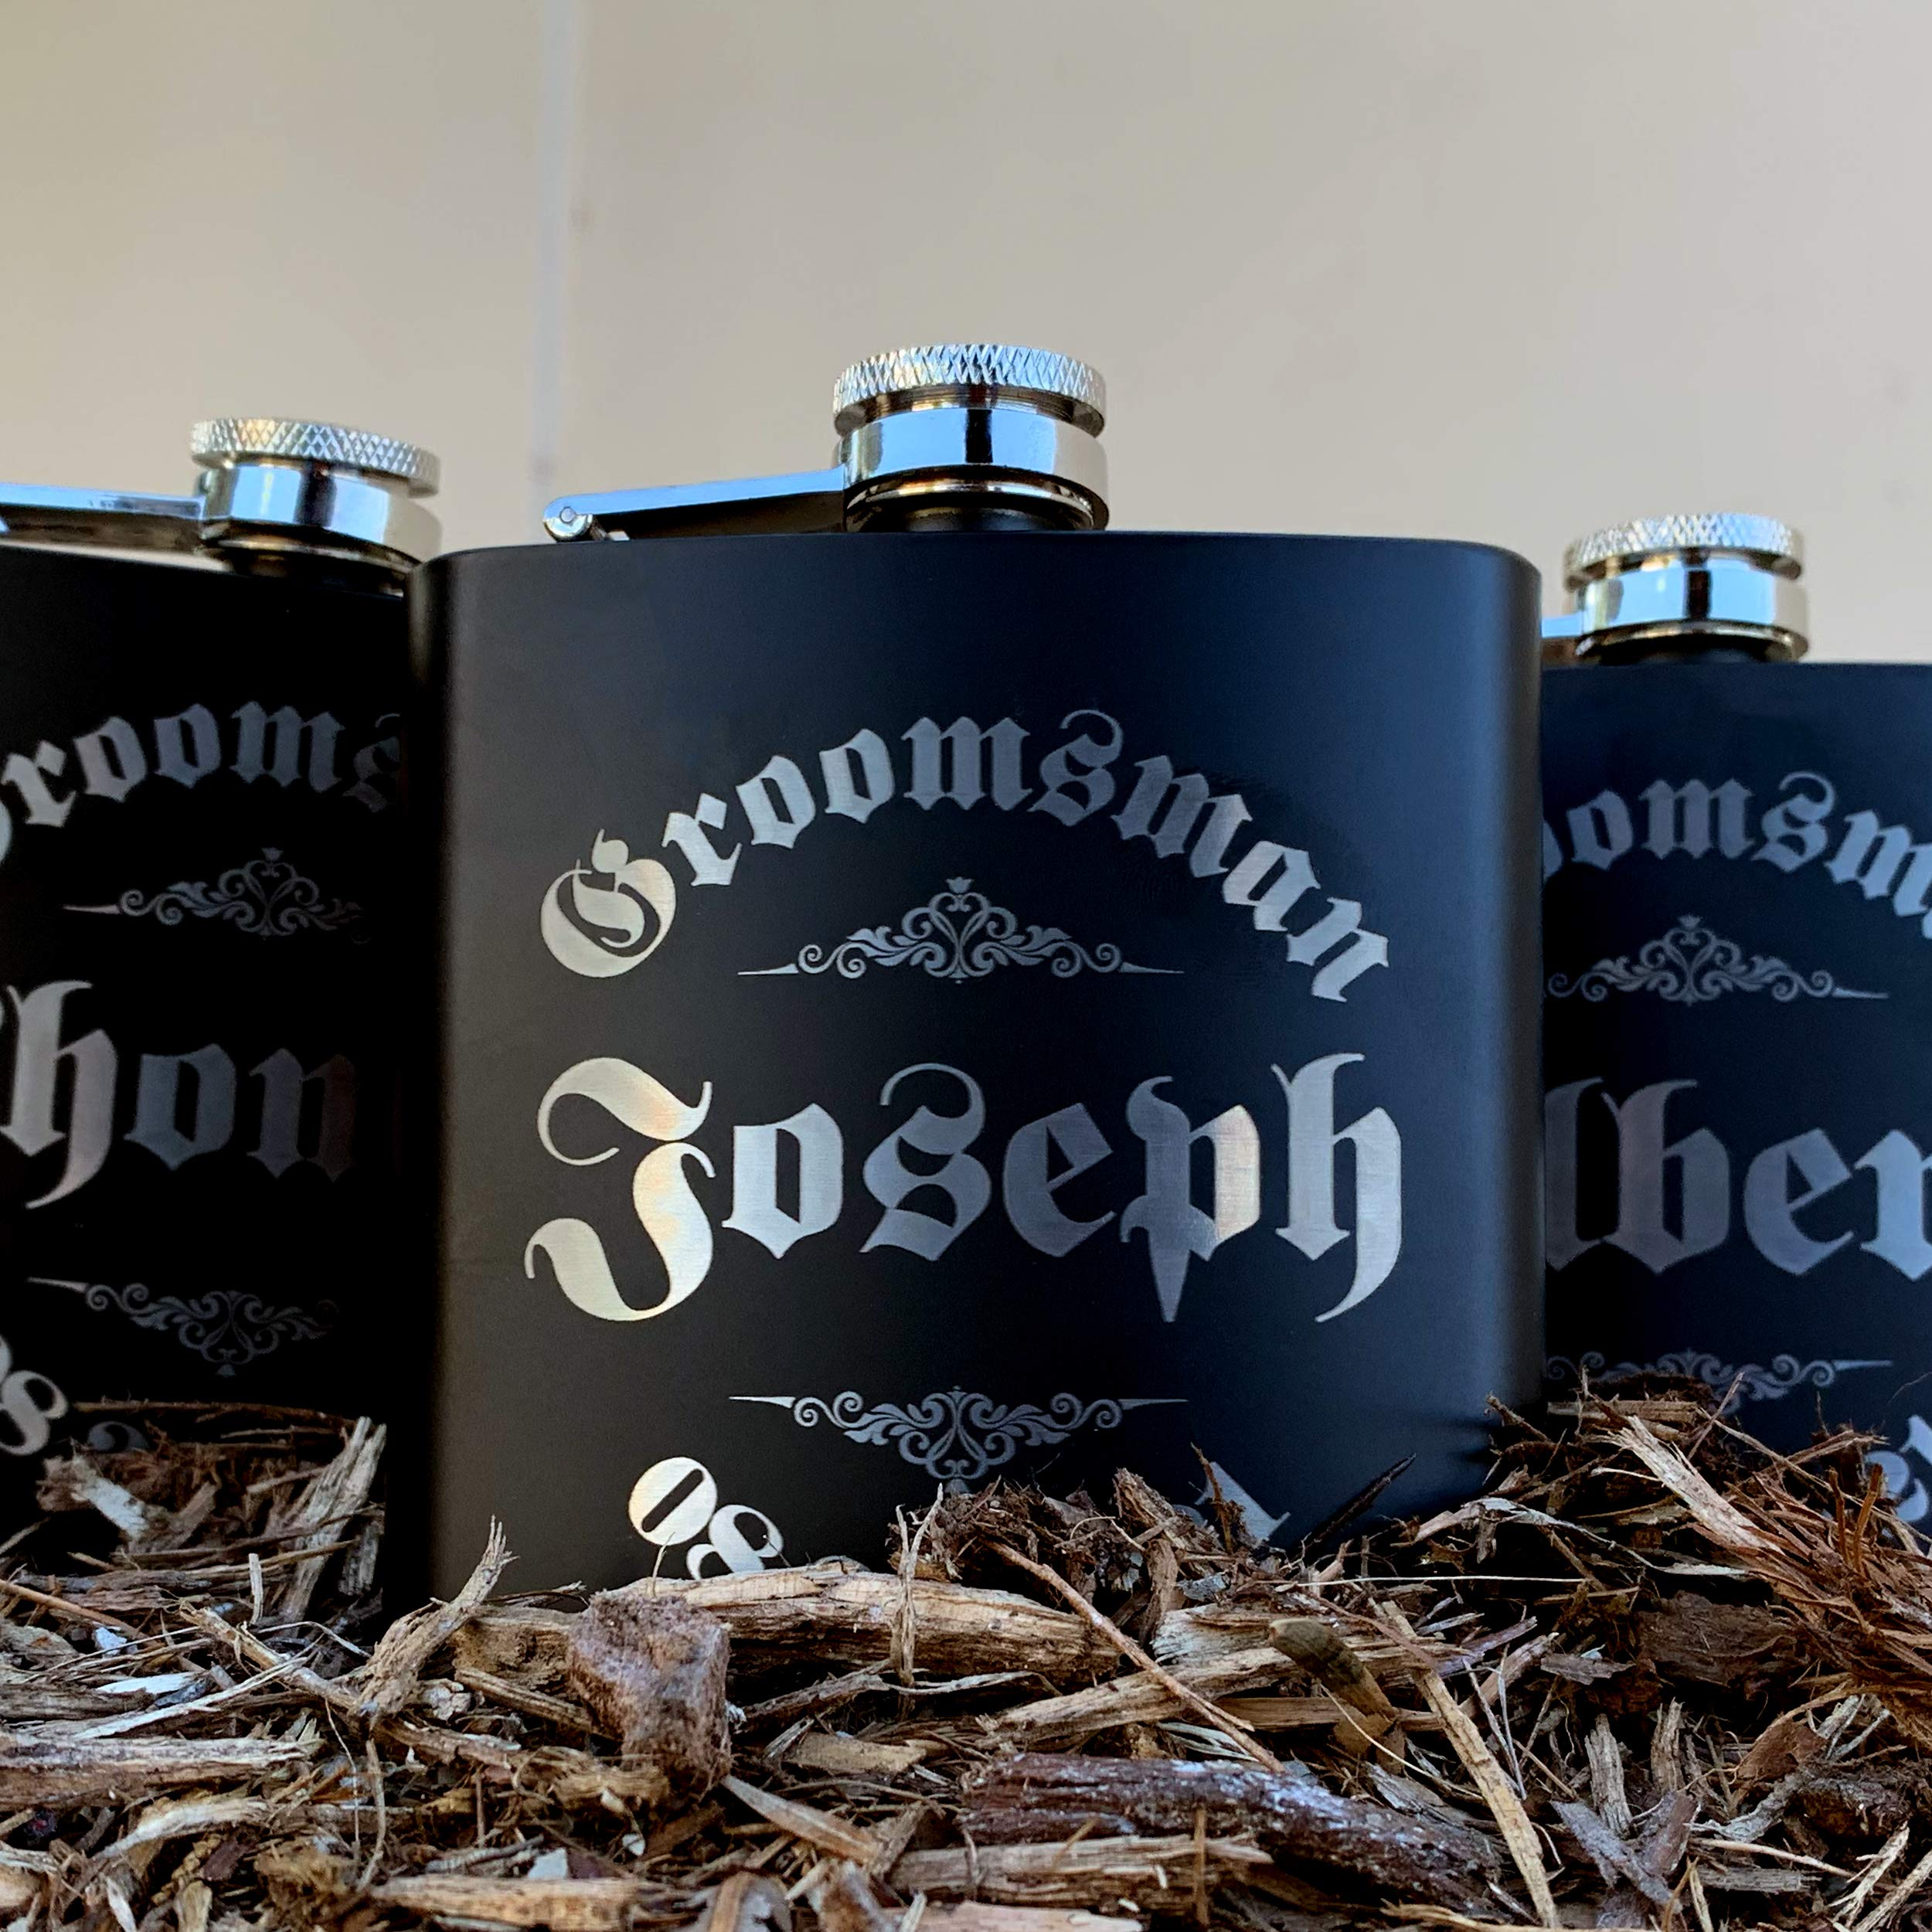 Personalizedgiftland Personalized Flask, Set Of 6 - Customized Flask Groomsmen Gifts For Wedding Favors, Personalized Groomsman gift - Stainless Steel Engraves Flasks w Gift Box Options - 6oz, Black by PersonalizedGiftLand (Image #8)